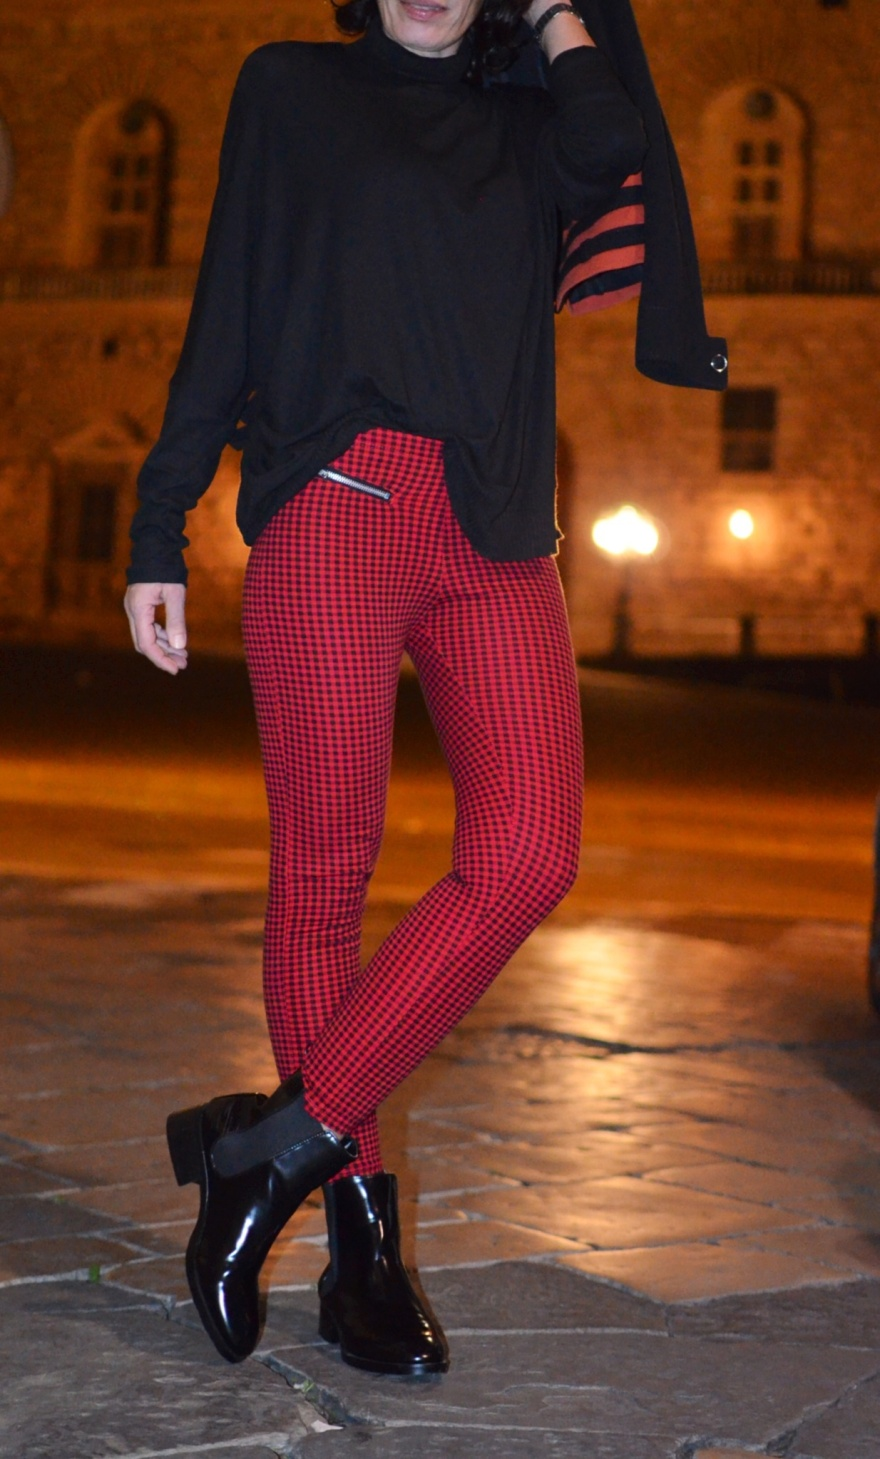 Pantaloni skinny Zara, pantaloni quadrettini rosso e nero, giacca vintage, sweater Zara, stivaletti B&C, vintage bag, black boots, outfit serata tra iMac, casual outfit, mysouldress, new in blog, fashion blogger, vintage fashion blogger, Zara, Zara Kids,